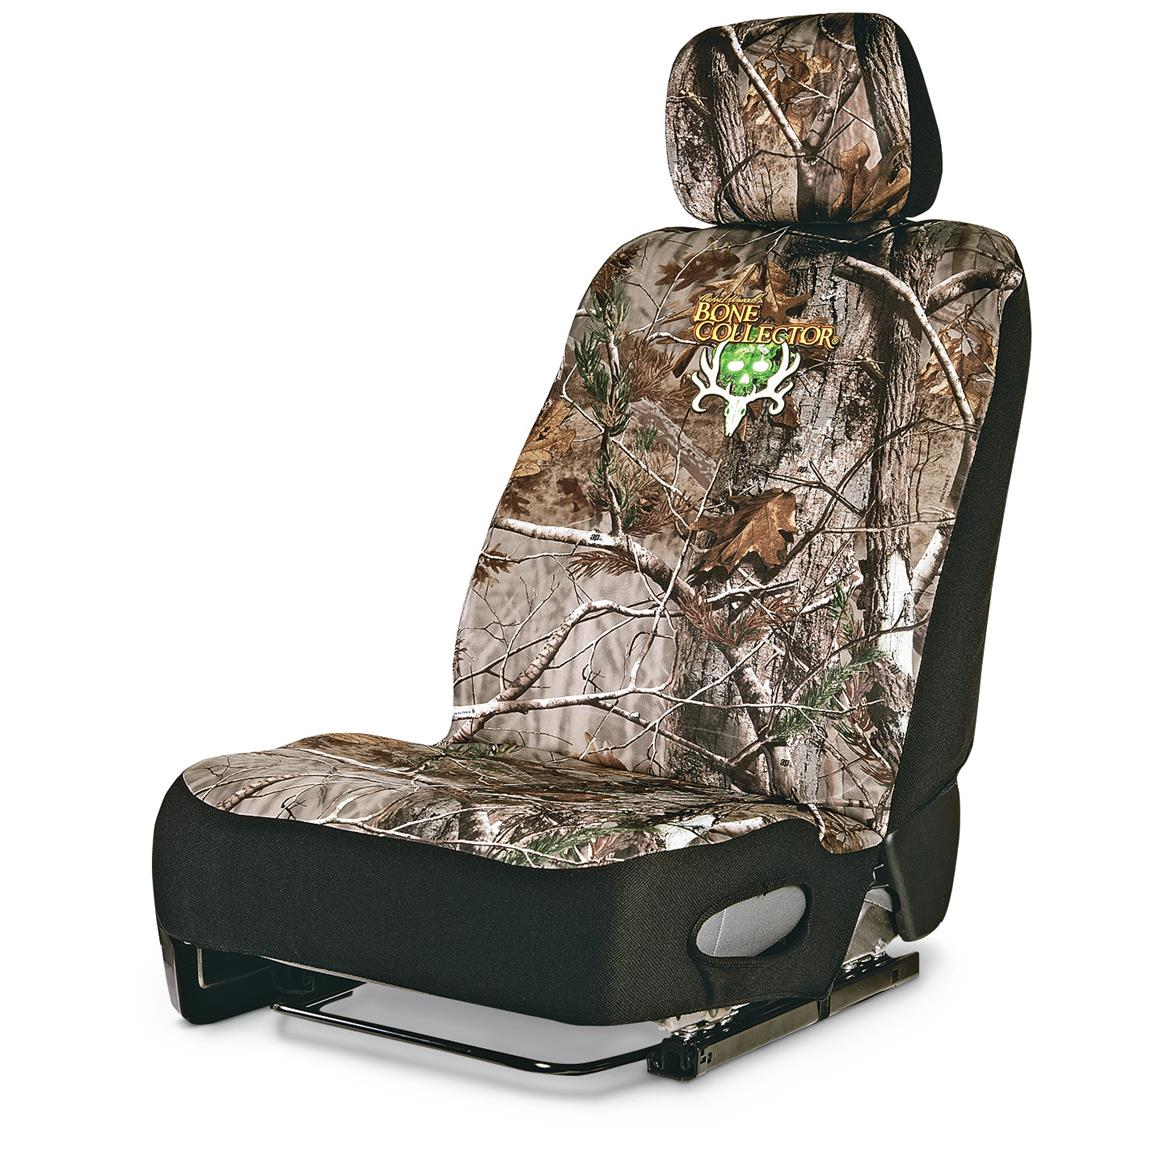 Neoprene Universal Low-back Camo Seat Cover, Bone Collector